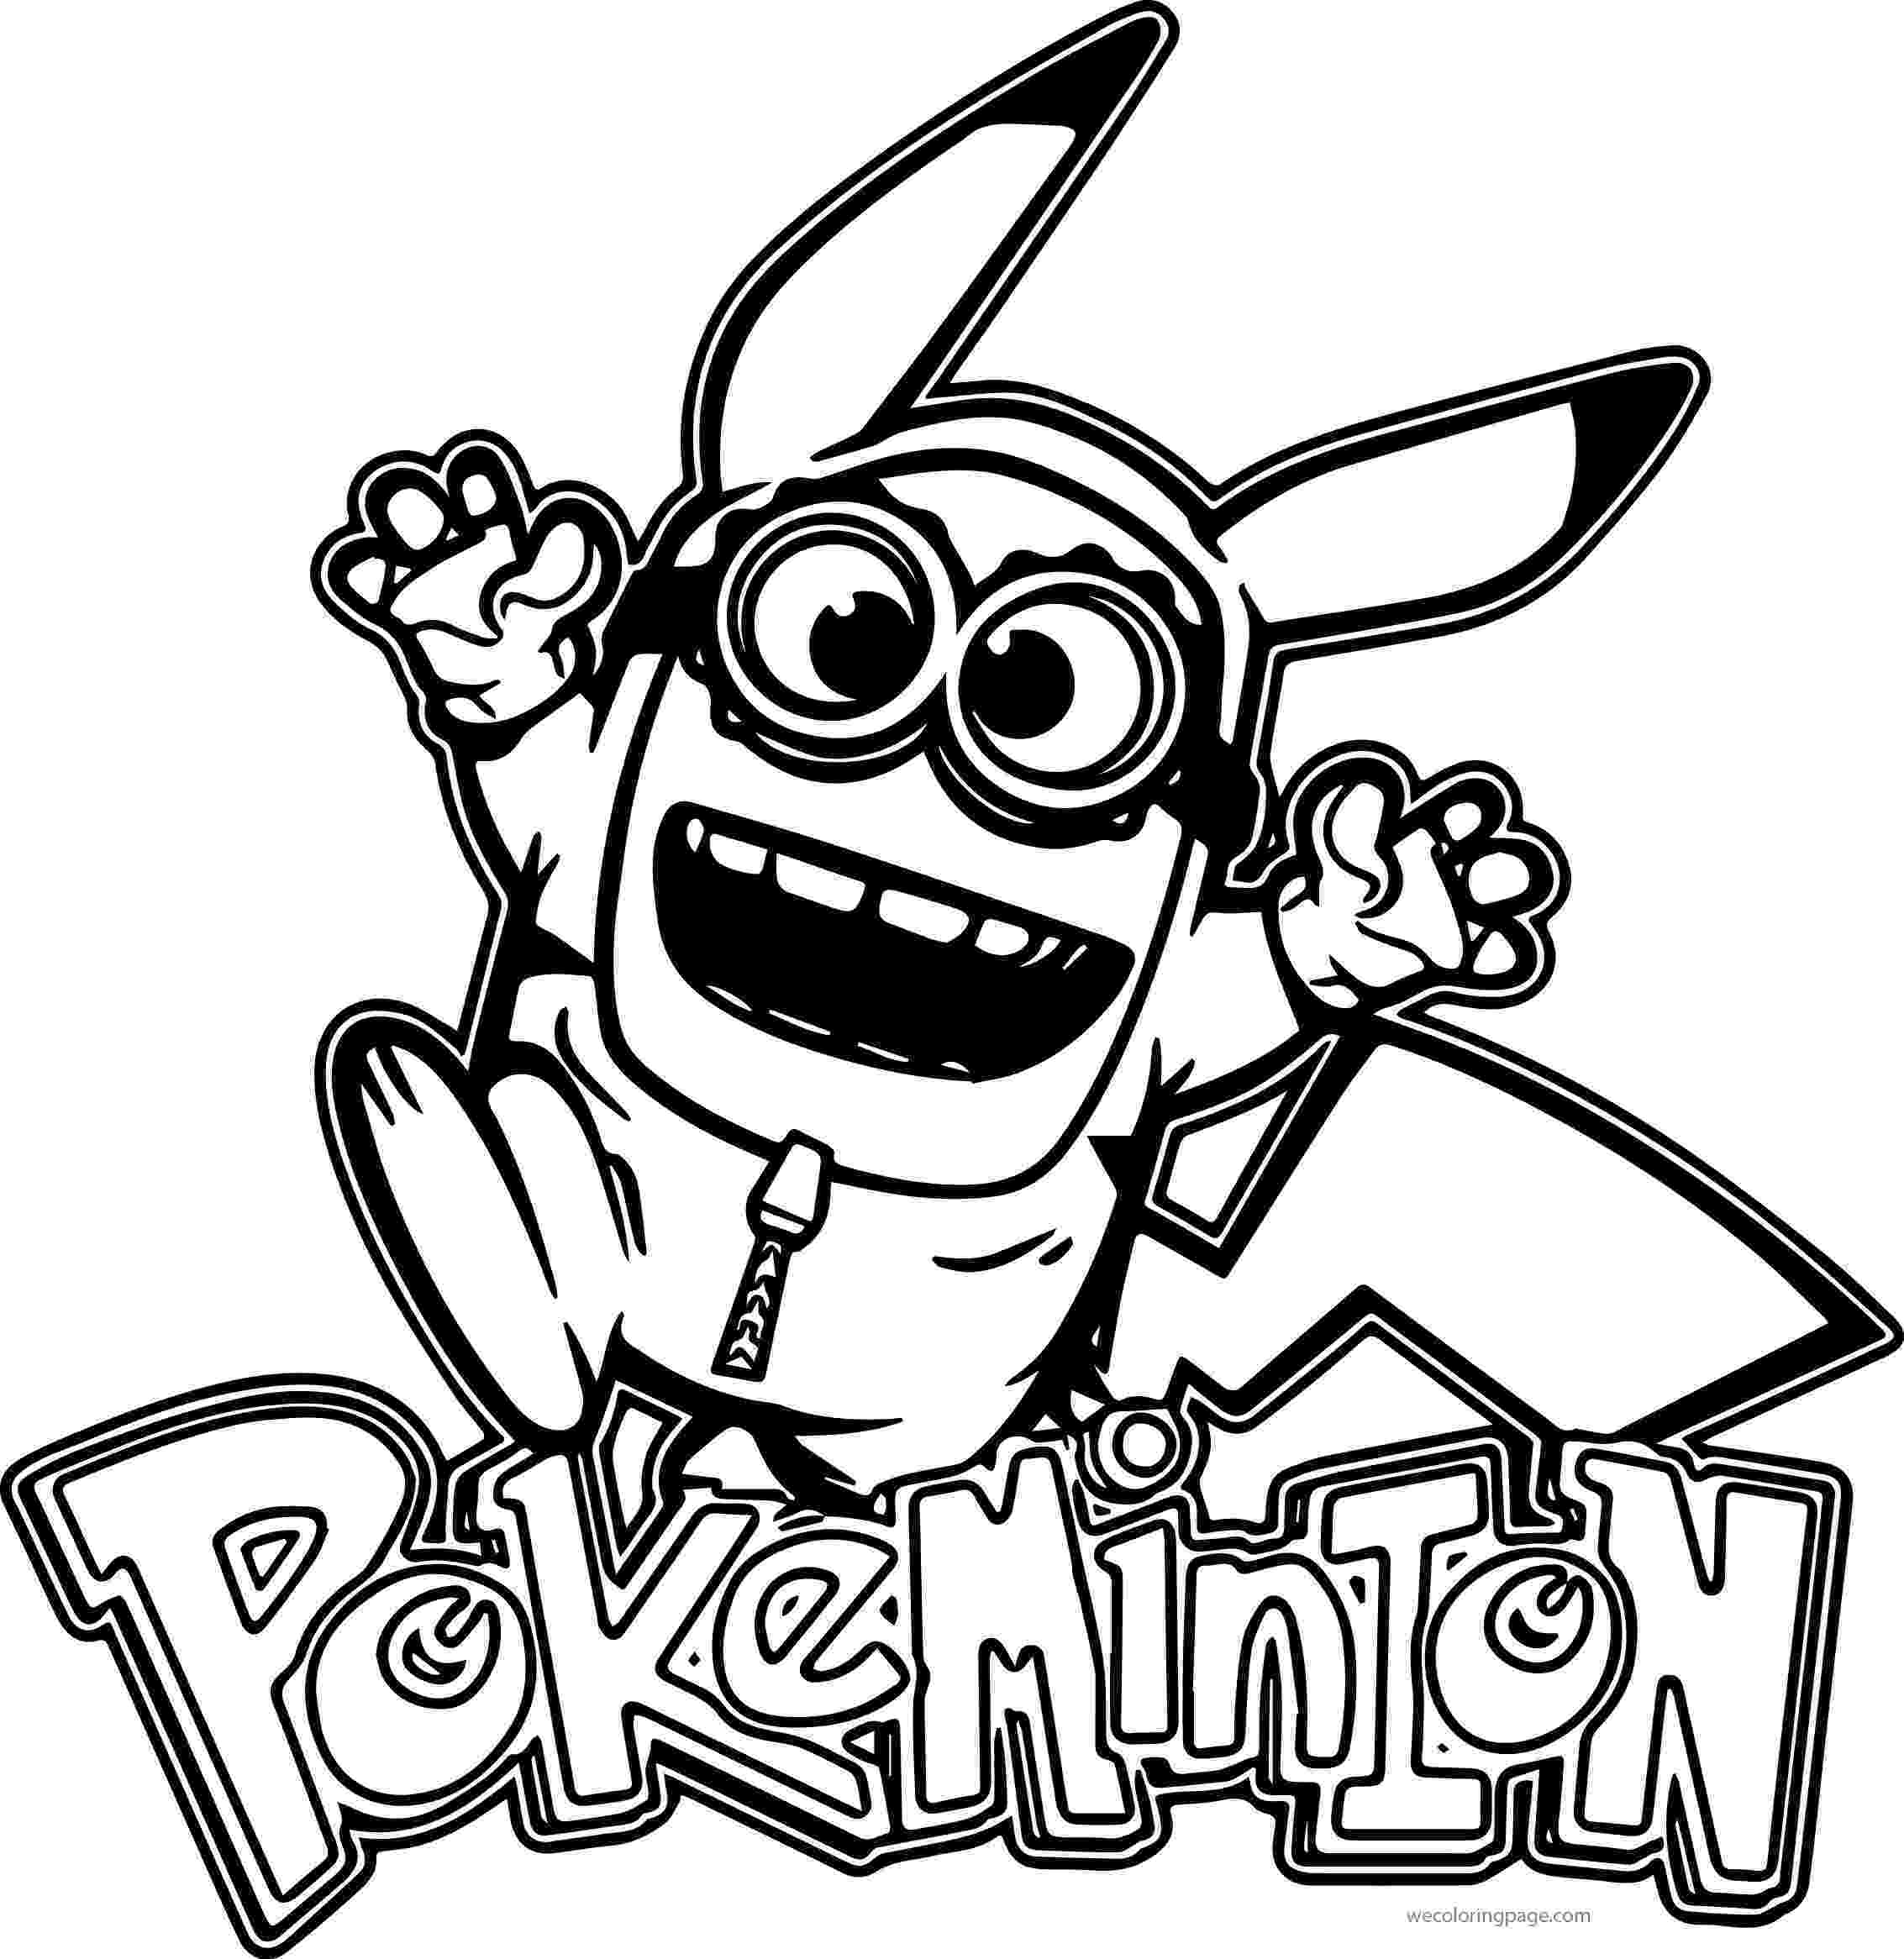 minion coloring pages online minion coloring pages only coloring pages pages online coloring minion